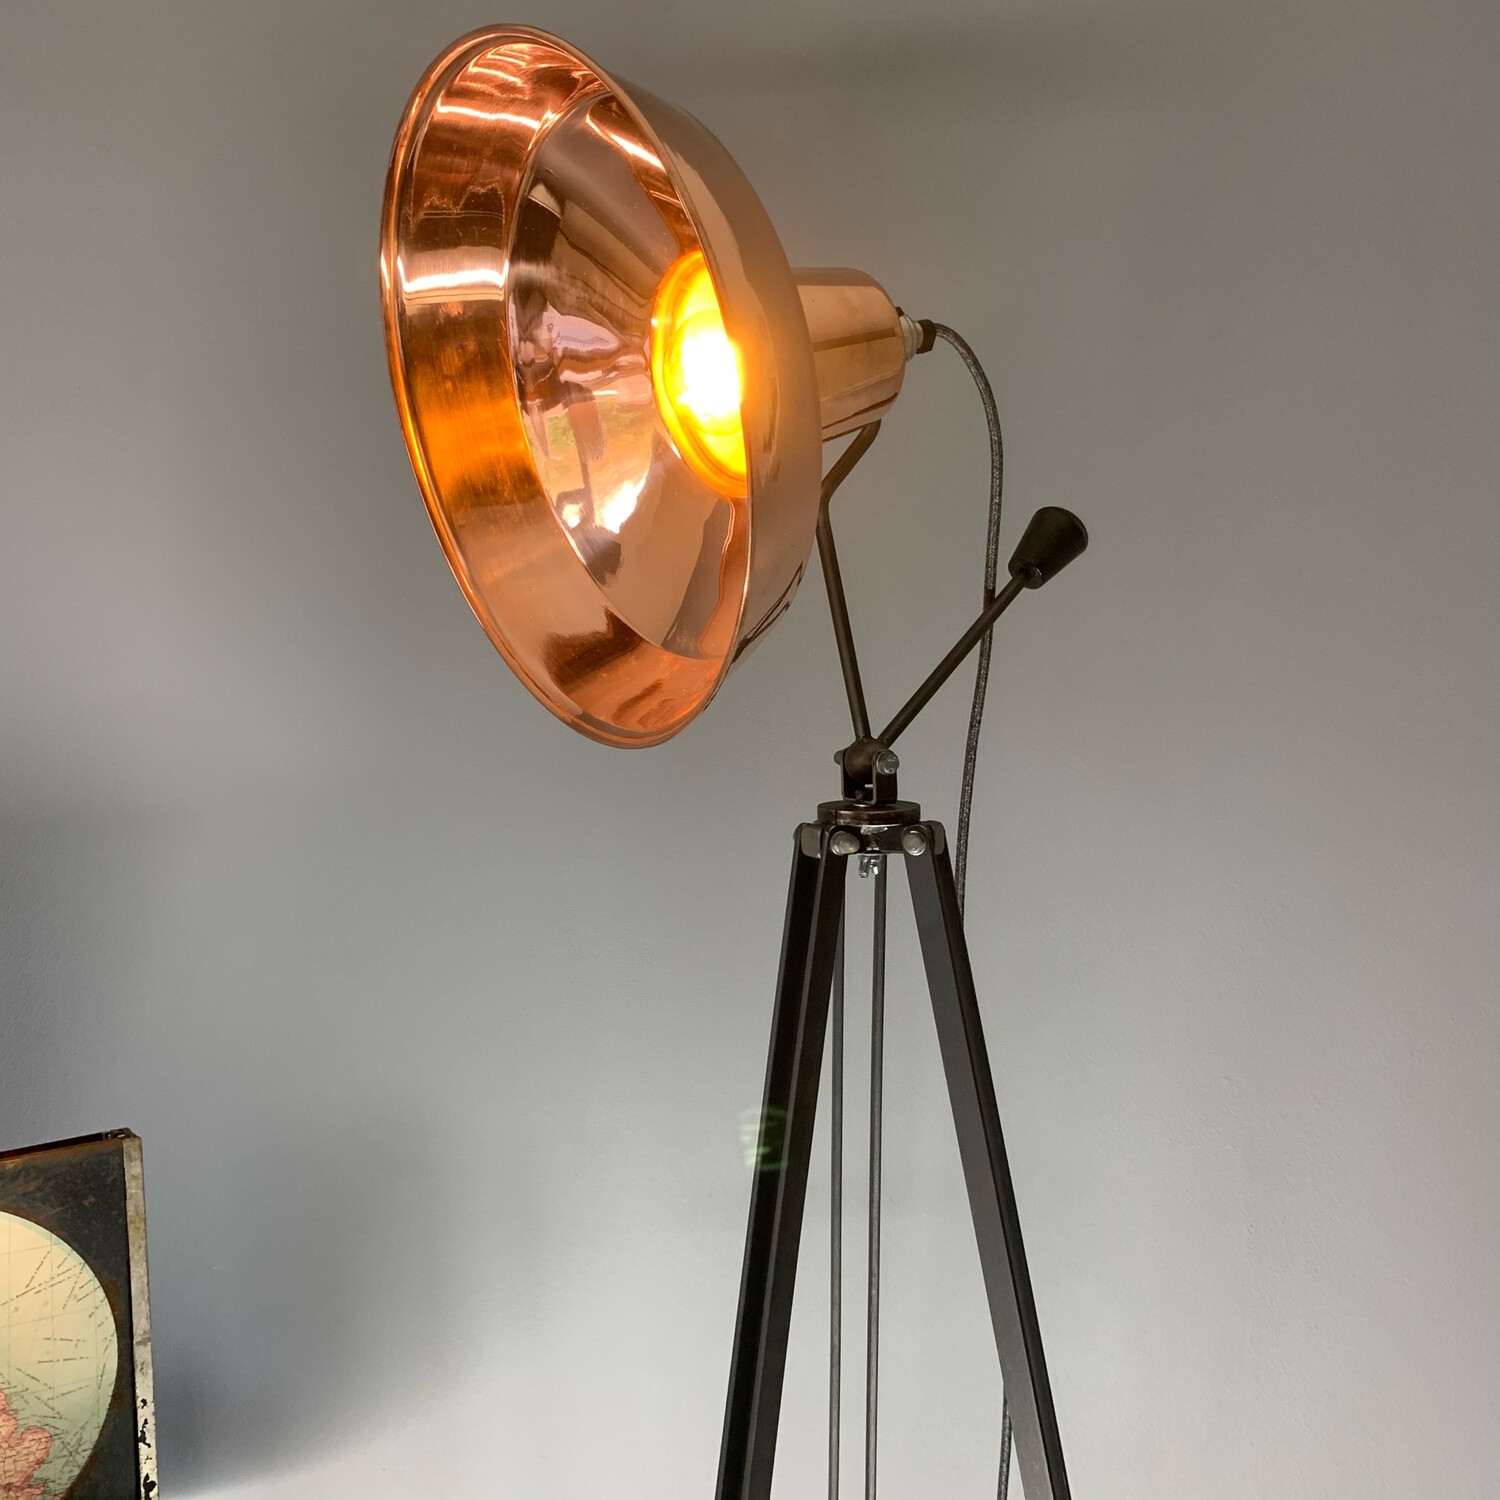 Copper Shade On Steel Pan/tilt Neck And Tripod